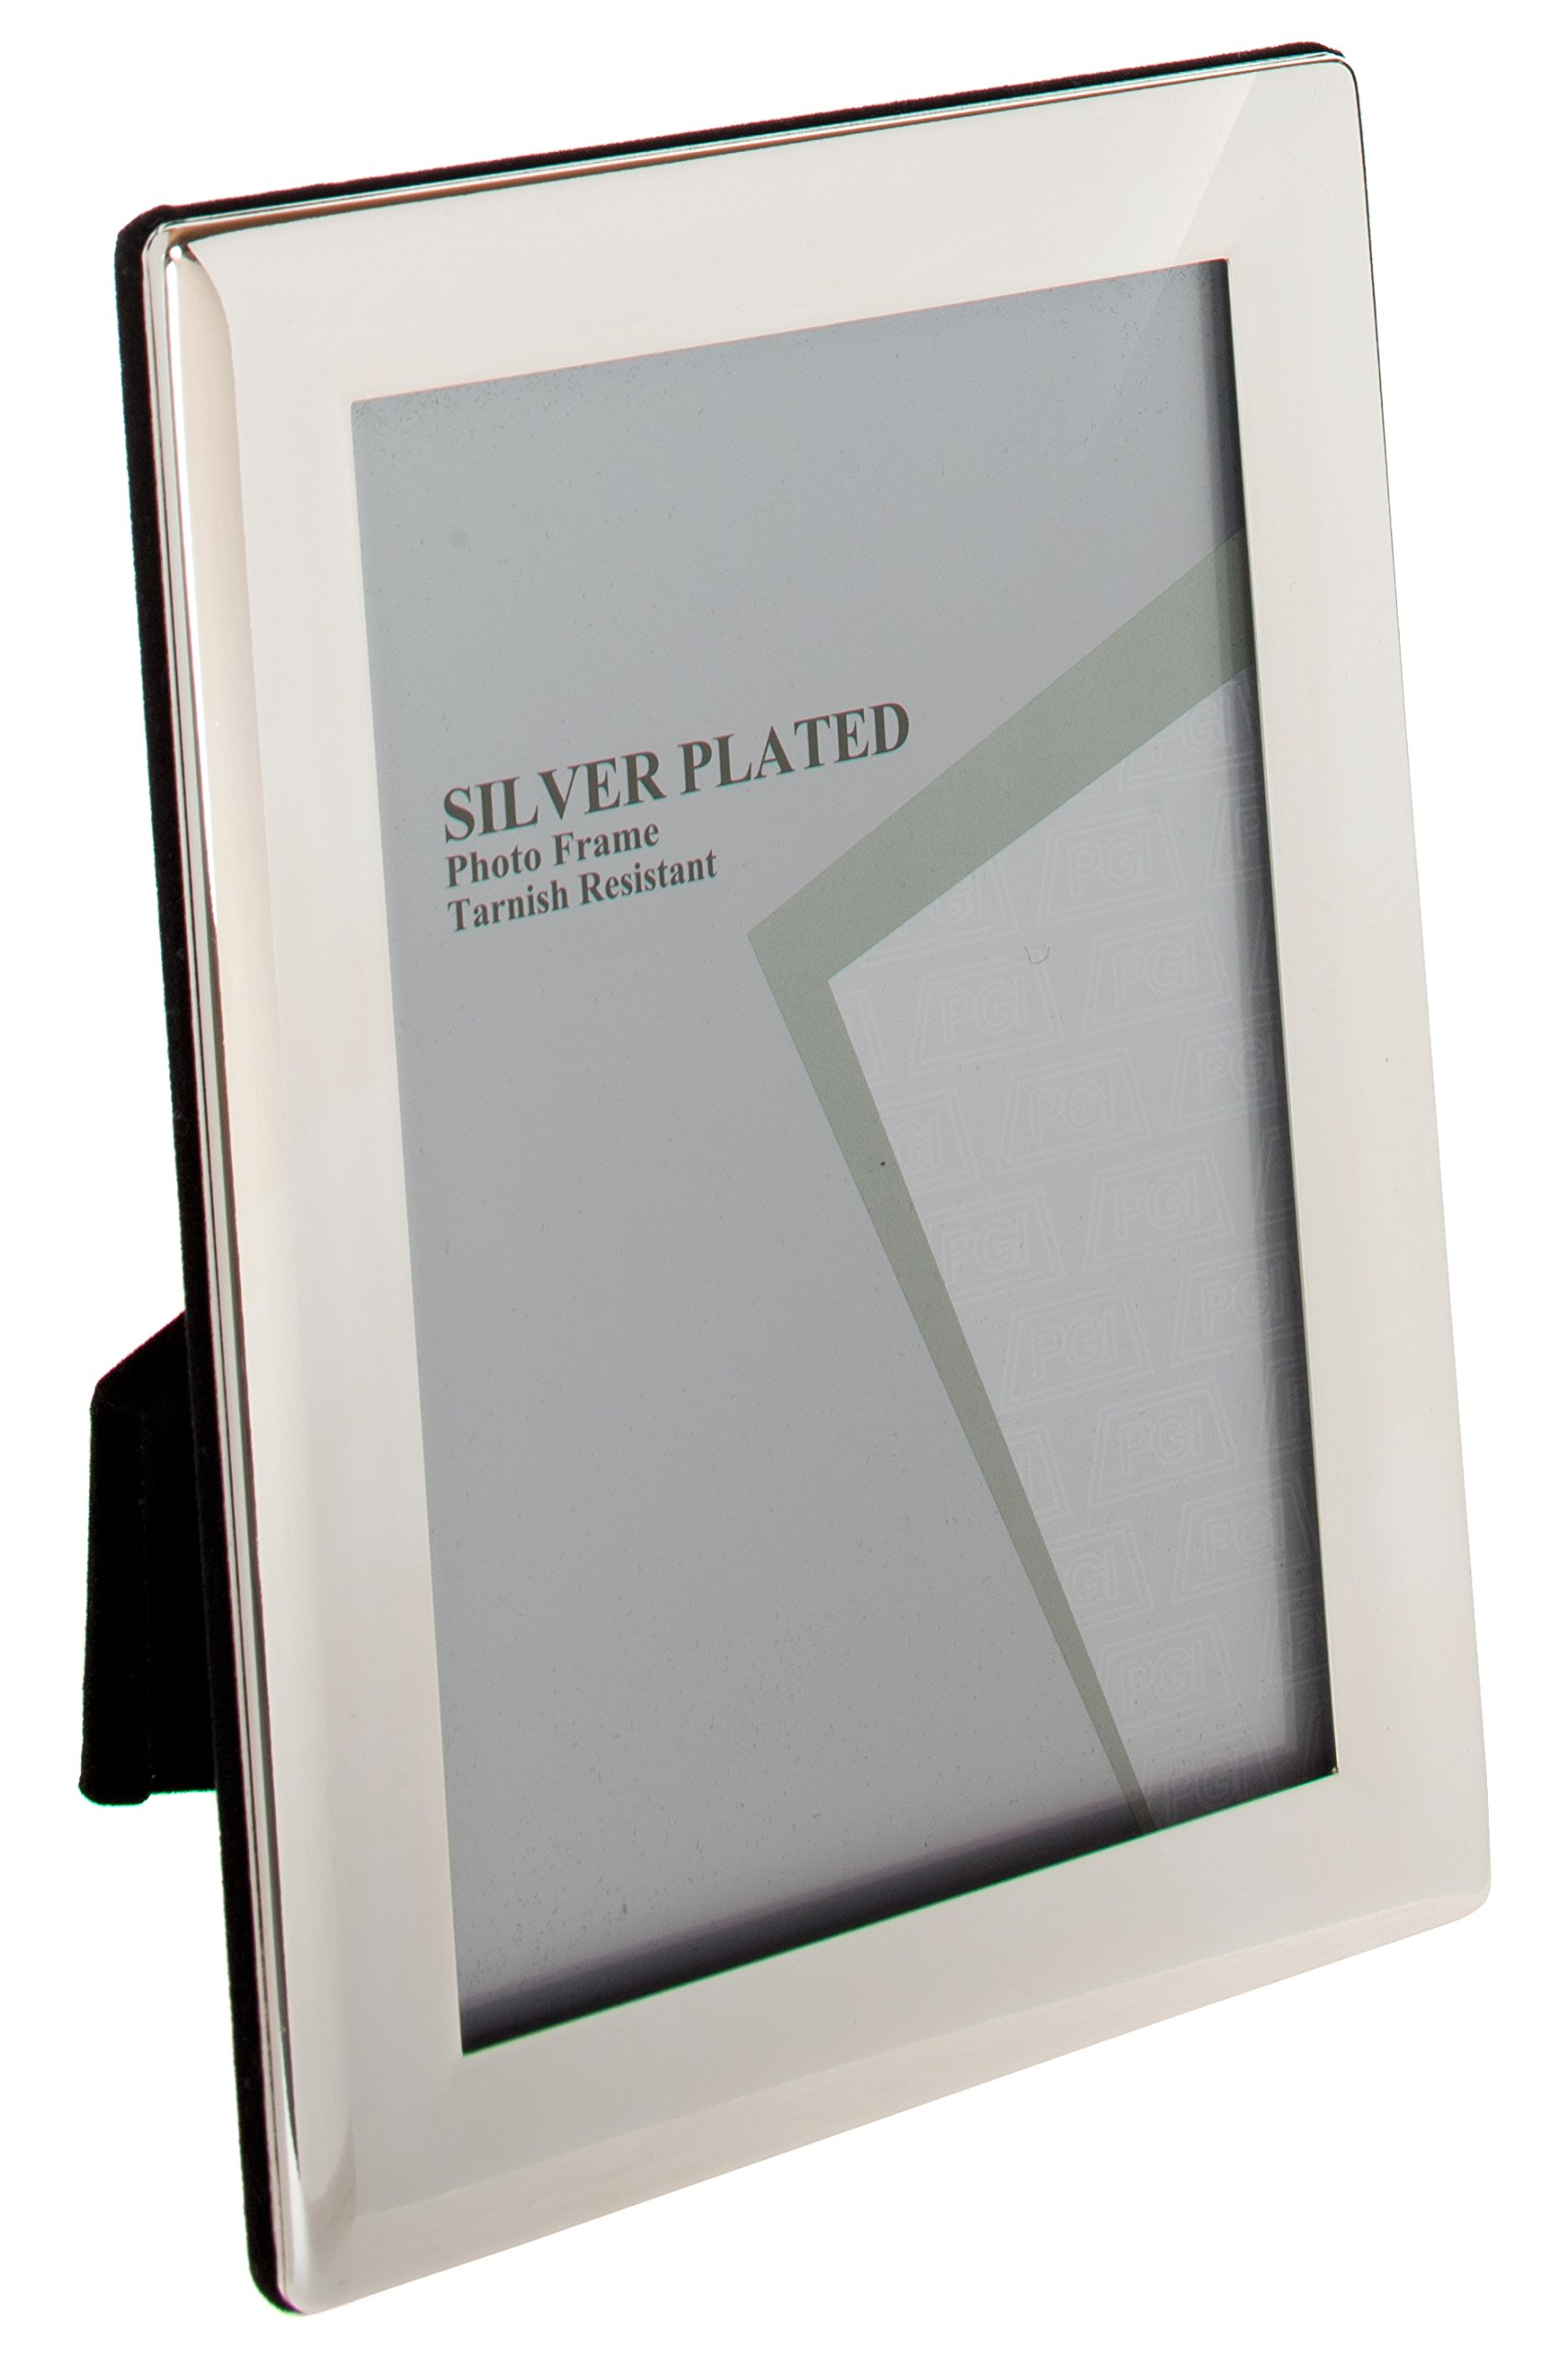 Viceni Thin Edge Silver Plated Photo Frame, 6 by 8-Inch by Viceni